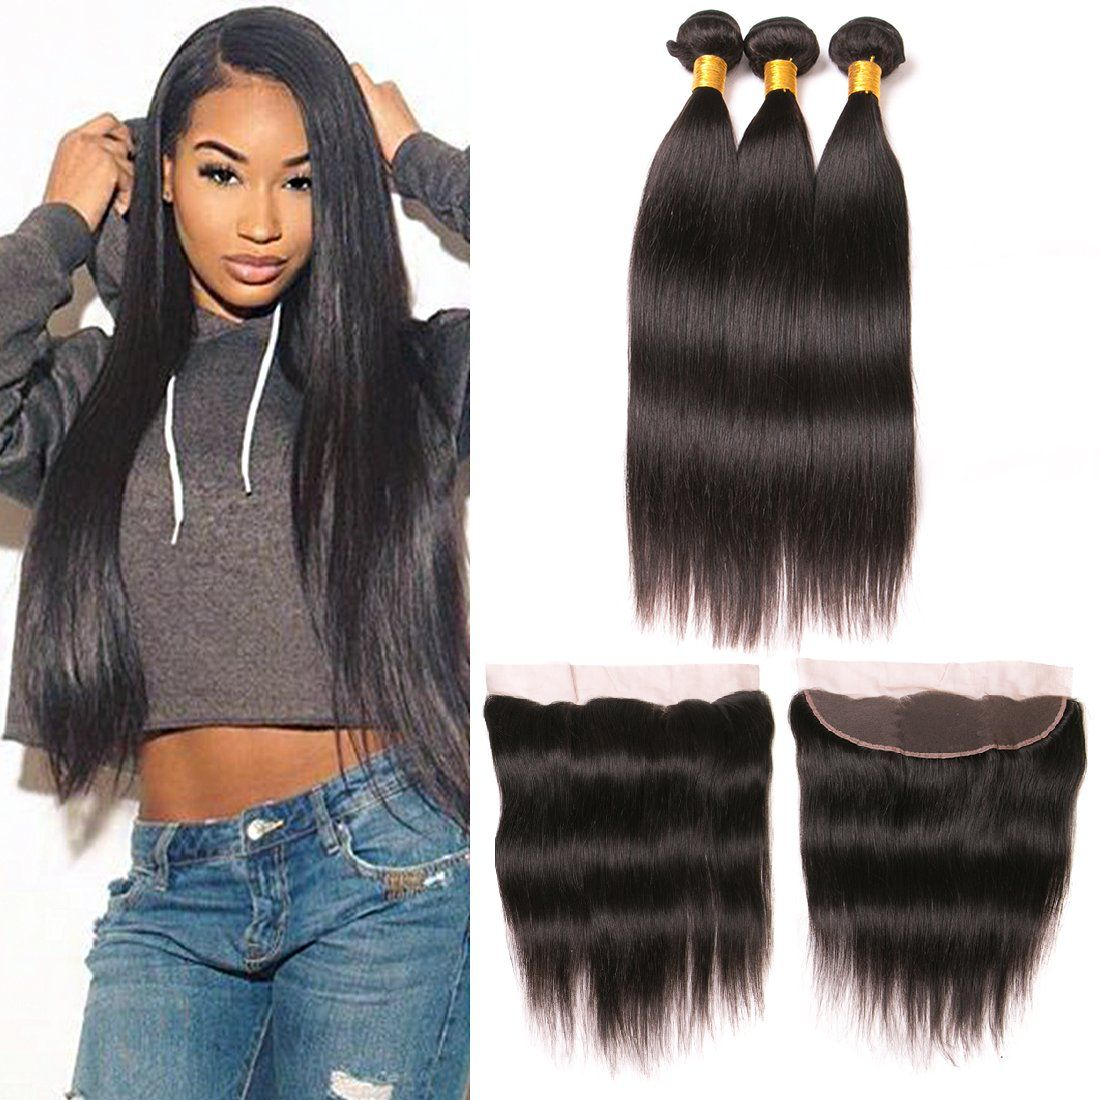 Straight Brazilian hair with closure recommend to wear for winter in 2019